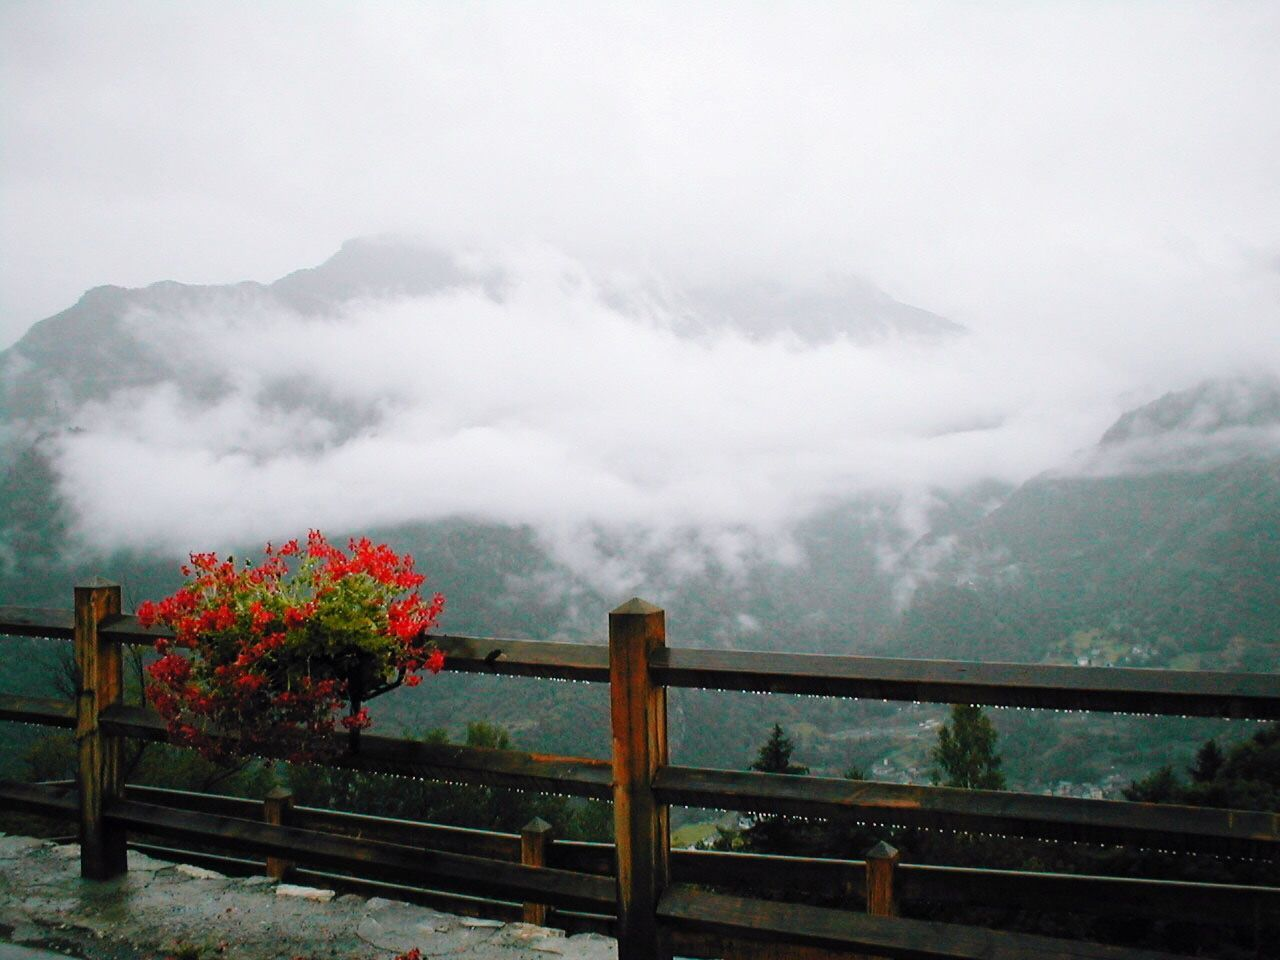 railing, nature, fog, mountain, beauty in nature, weather, scenics, sky, cloud - sky, no people, day, tranquility, tranquil scene, outdoors, tree, landscape, mountain range, water, flower